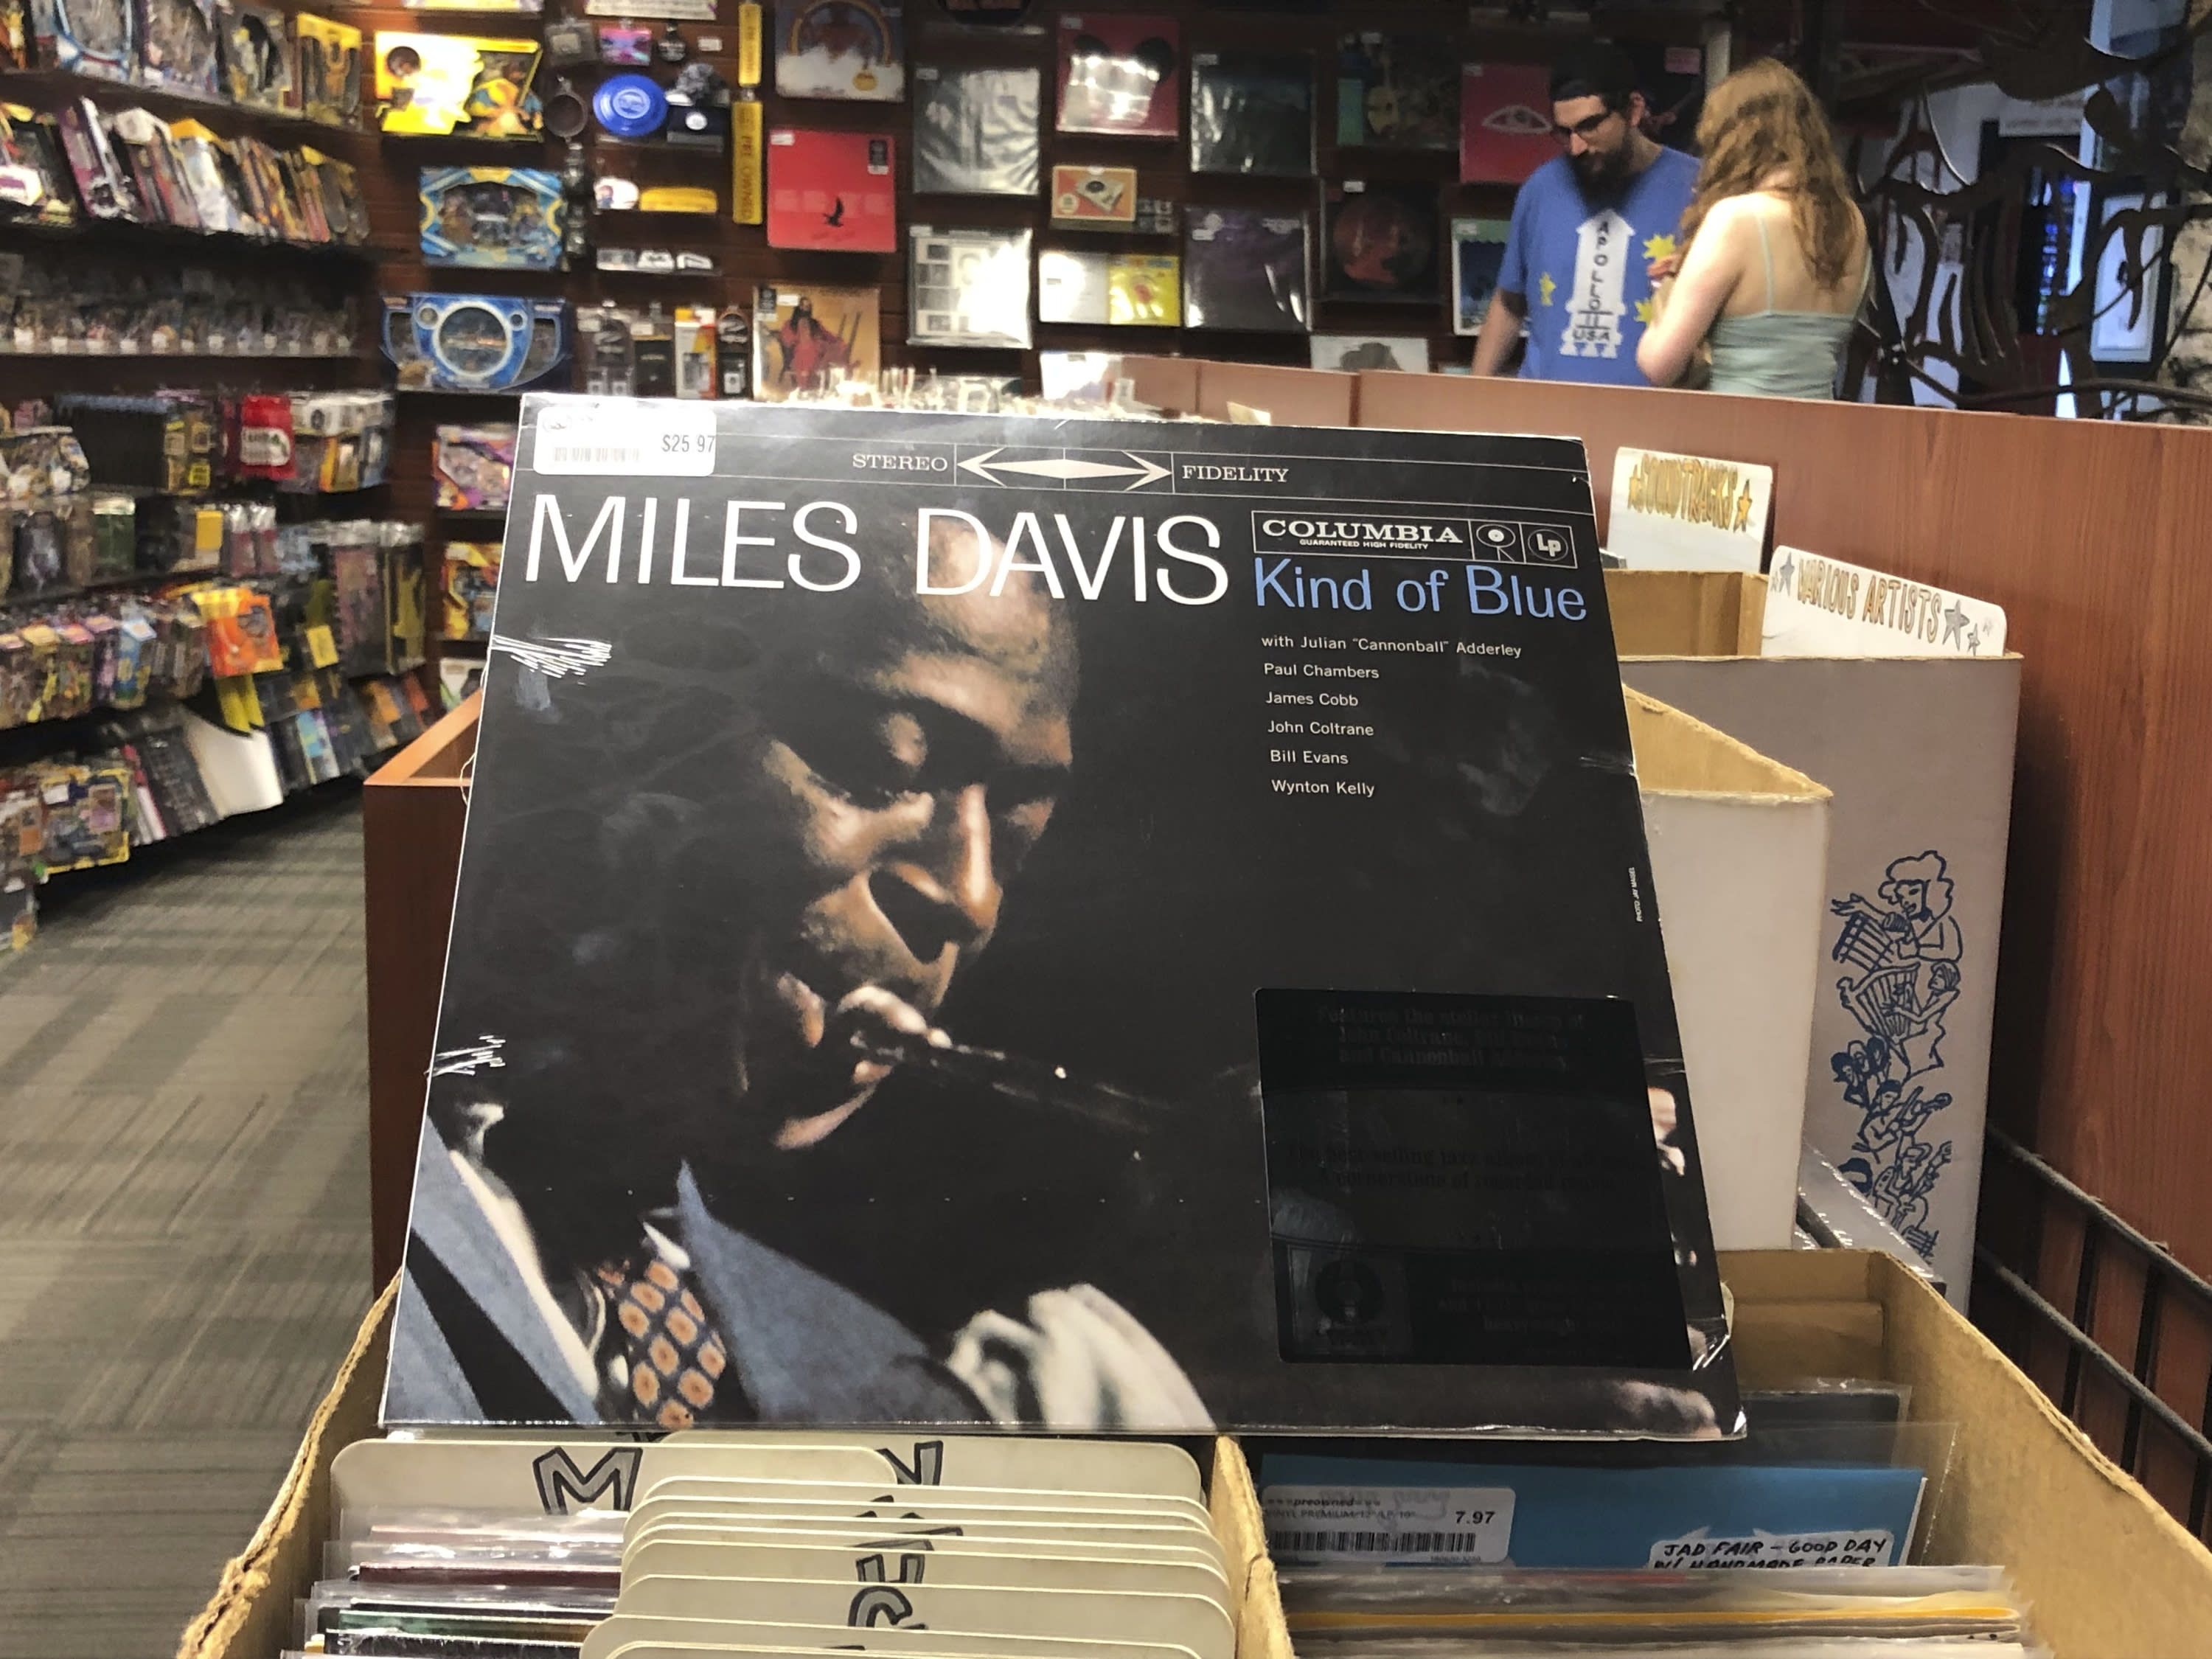 """FILE - In this Aug. 17, 2019, file photo, the """"Kind of Blue"""" album cover is on display at Bull Moose record store in Portland, Maine, on the 60th anniversary of the album's release. Drummer Jimmy Cobb, the last surviving musician who performed on Miles Davis' jazz masterpiece """"Kind of Blue,"""" died Sunday, May 25, 2020, at his Manhattan home from lung cancer. He was 91. (AP Photo/David Sharp, File)"""